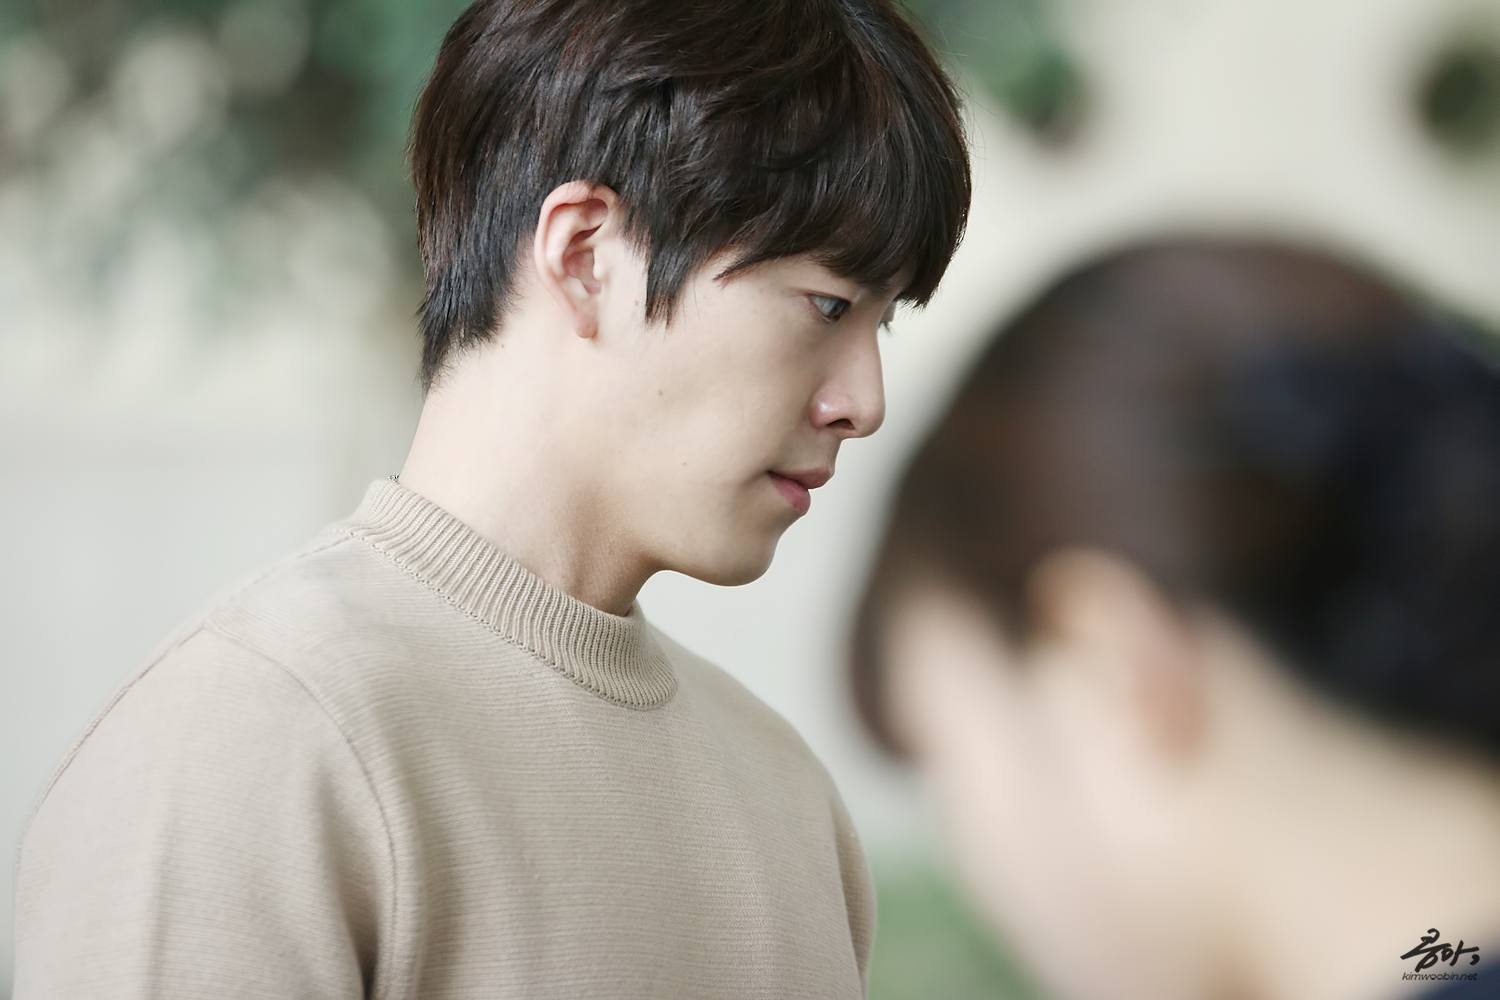 Despite The Fact That No One Knew About His Cancer Diagnosis Kim Woo Bin Didnt Want To Hide Anything From Public